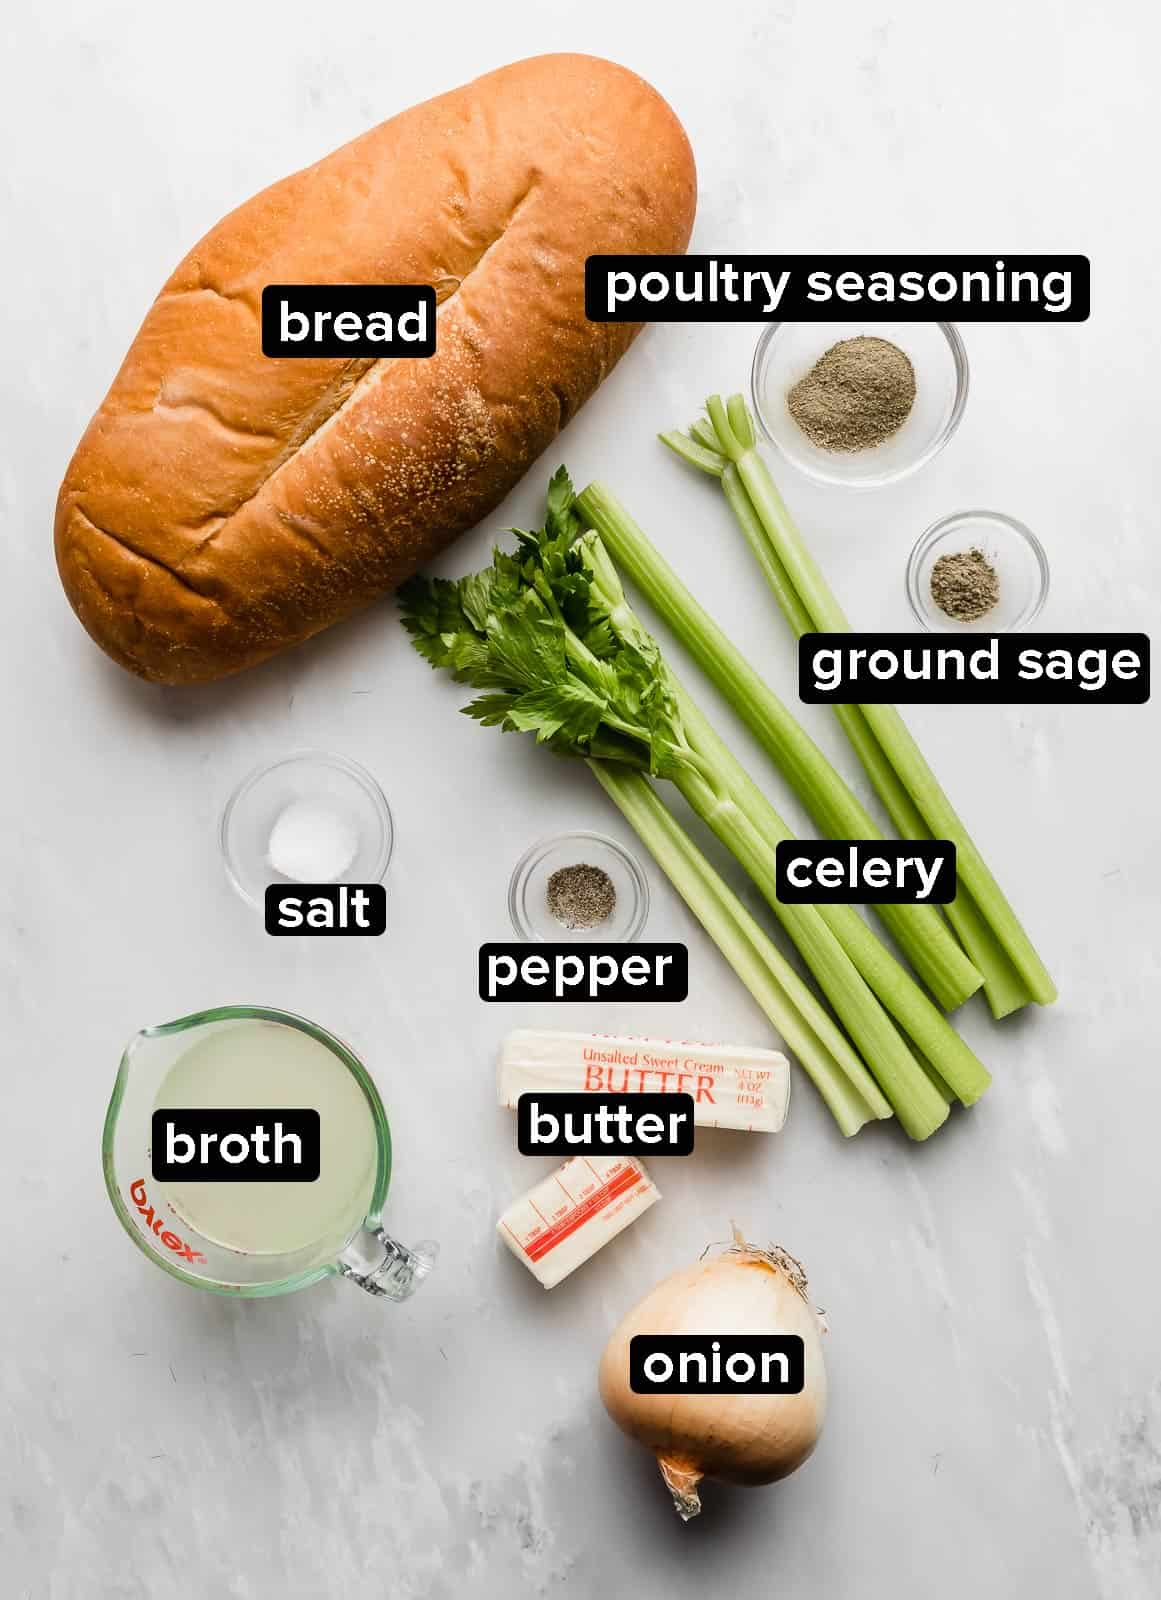 Ingredients used to make homemade thanksgiving stuffing on a marble counter.